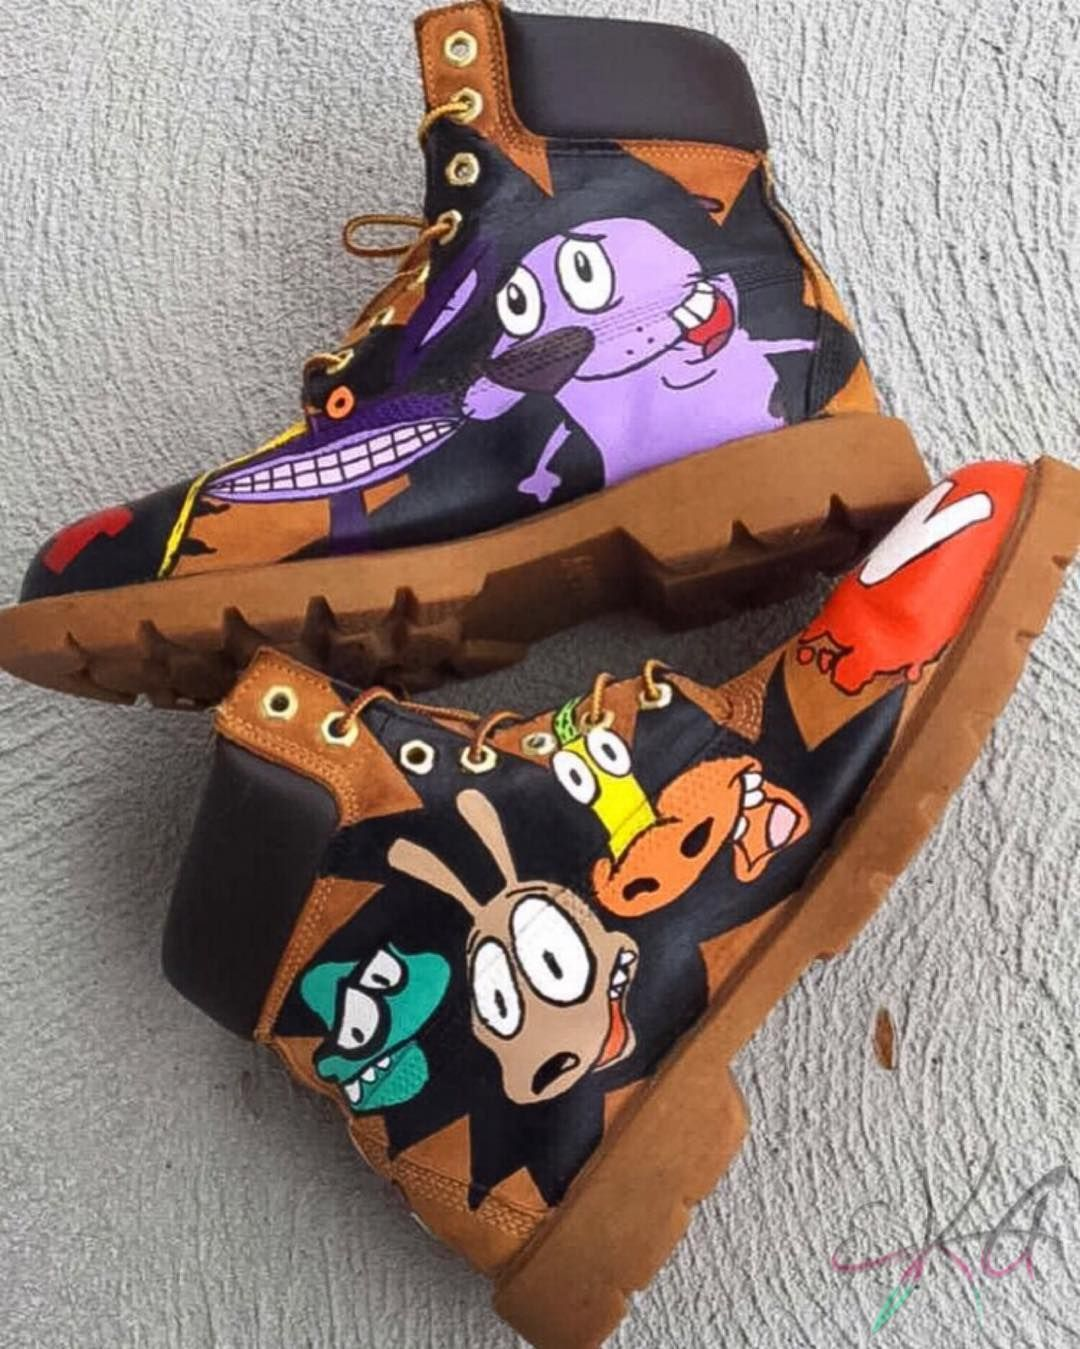 ThisIsMeBoo | Stuff to Try in 2019 | Timberland boots